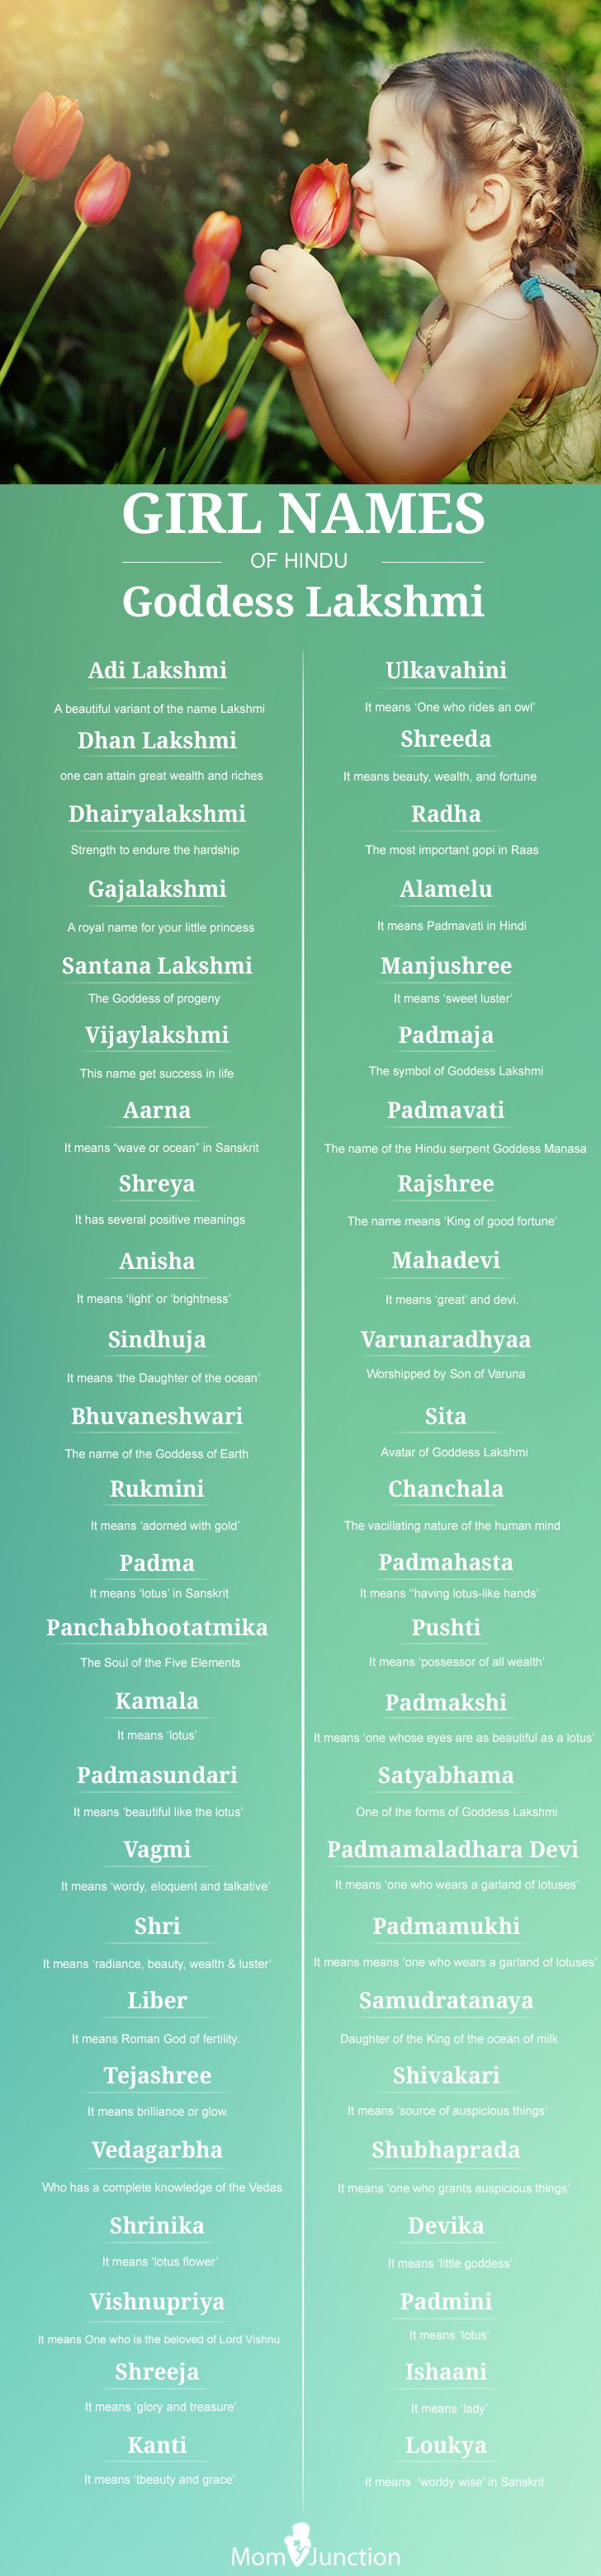 50 Best Names Of Hindu Goddess Lakshmi For Your Baby Girl: Chanting the different names of the goddess Lakshmi can attract wealth. Here is a list of 50 names for your baby girl that spell prosperity.